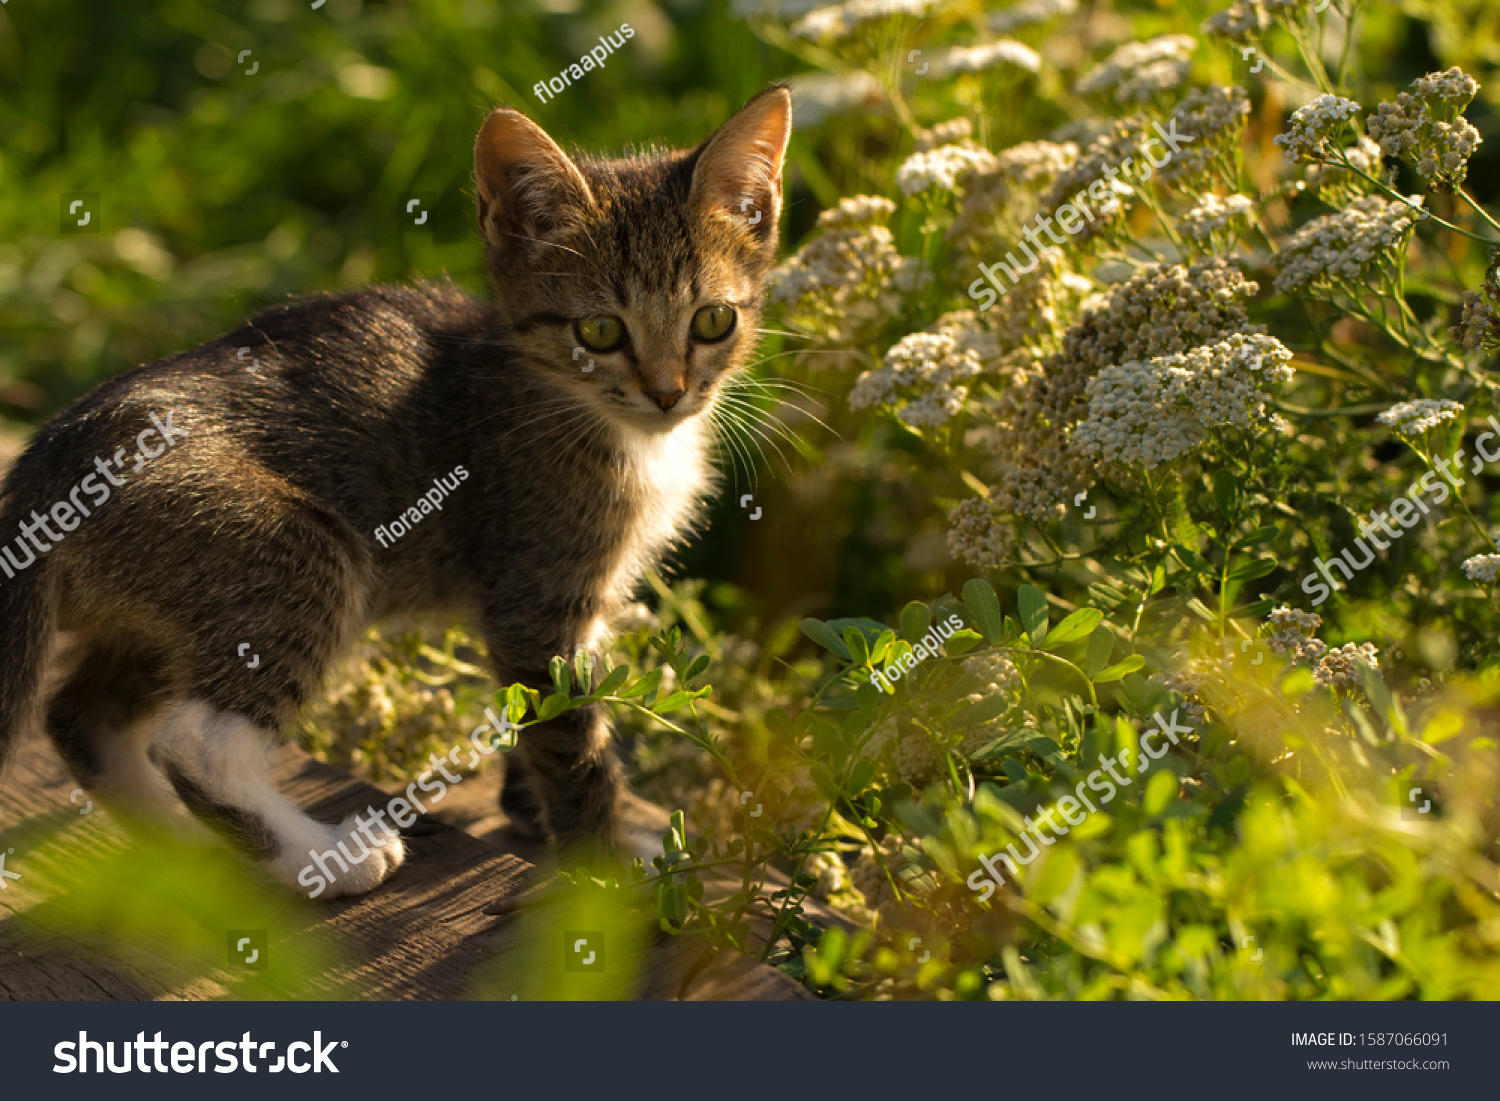 stock-photo-a-little-grey-striped-kitten